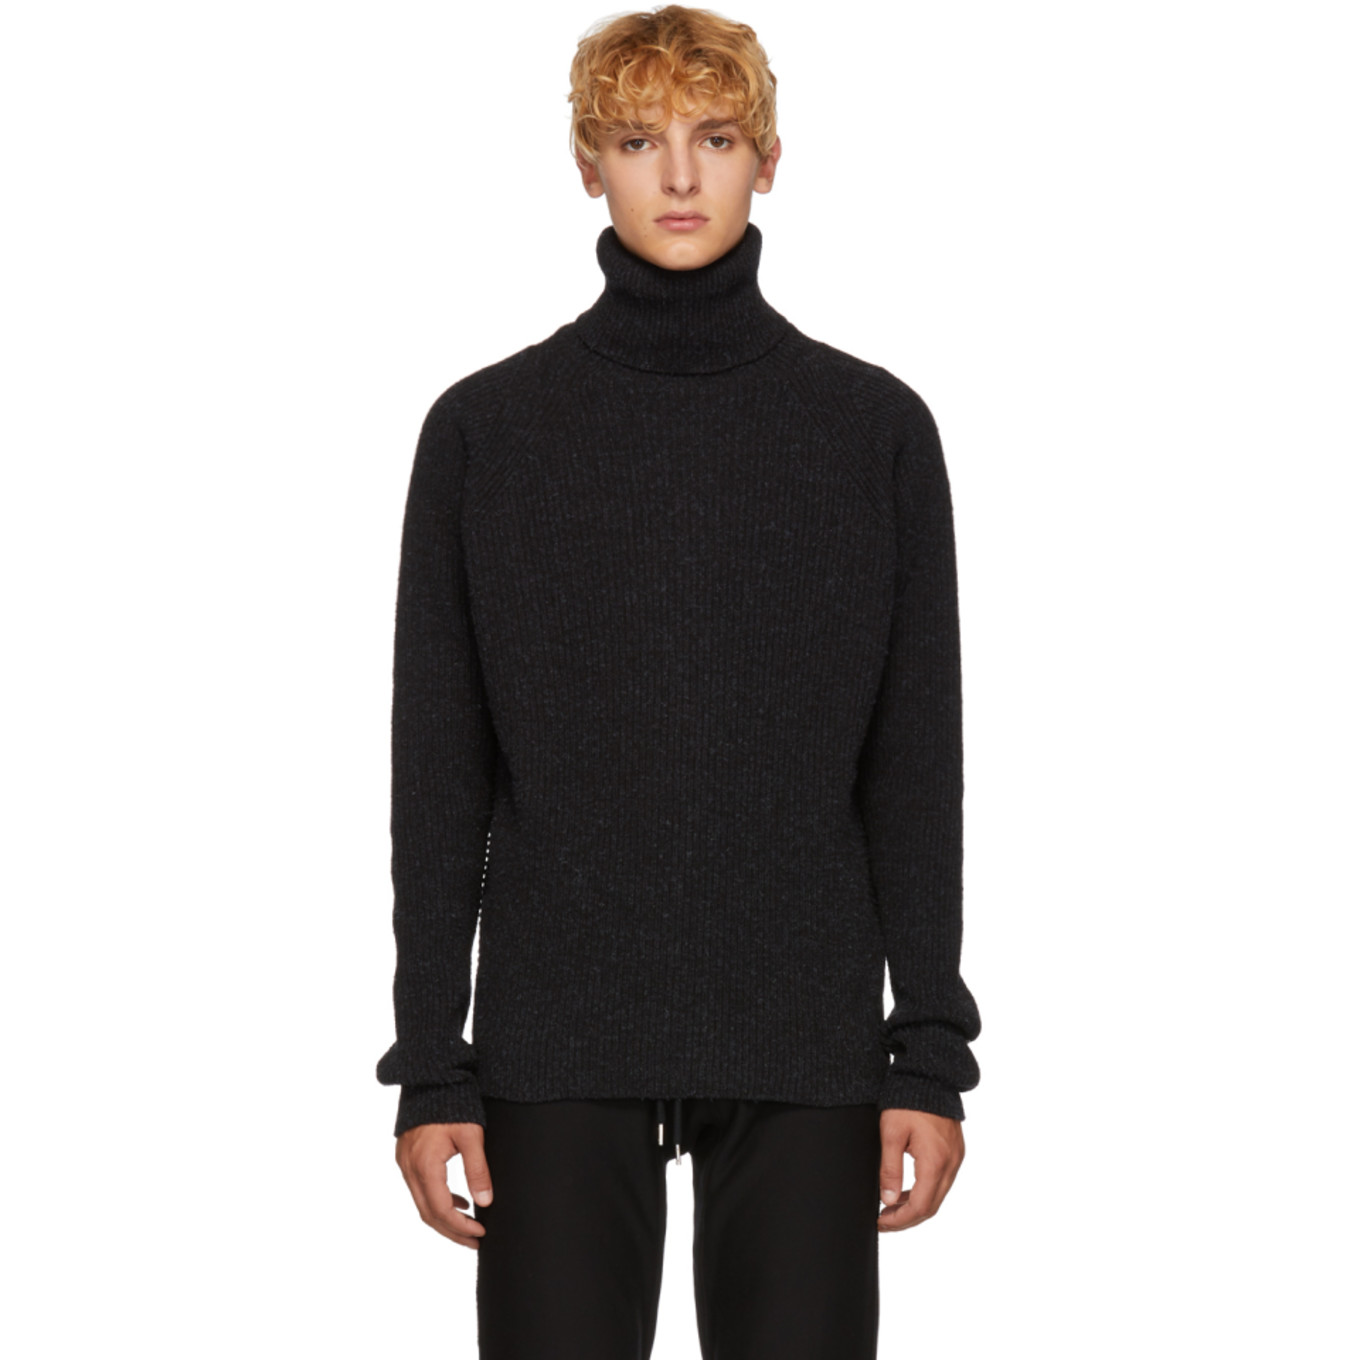 Black Merichan Turtleneck by Jan Jan Van Essche